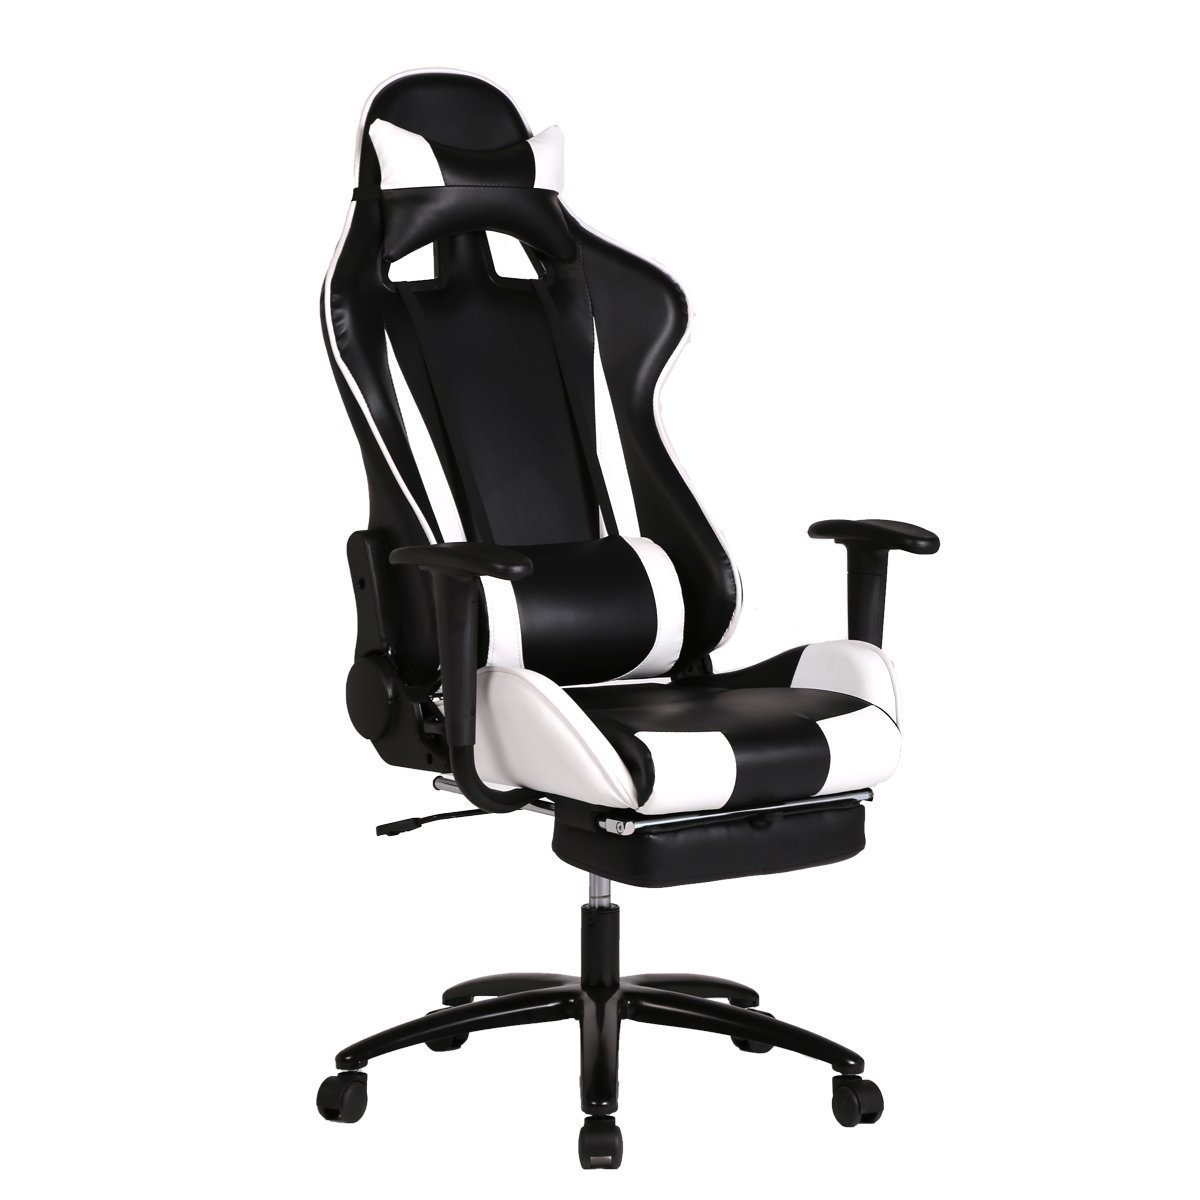 cheap gamer chair electric death 10 gaming chairs  under 100 pro